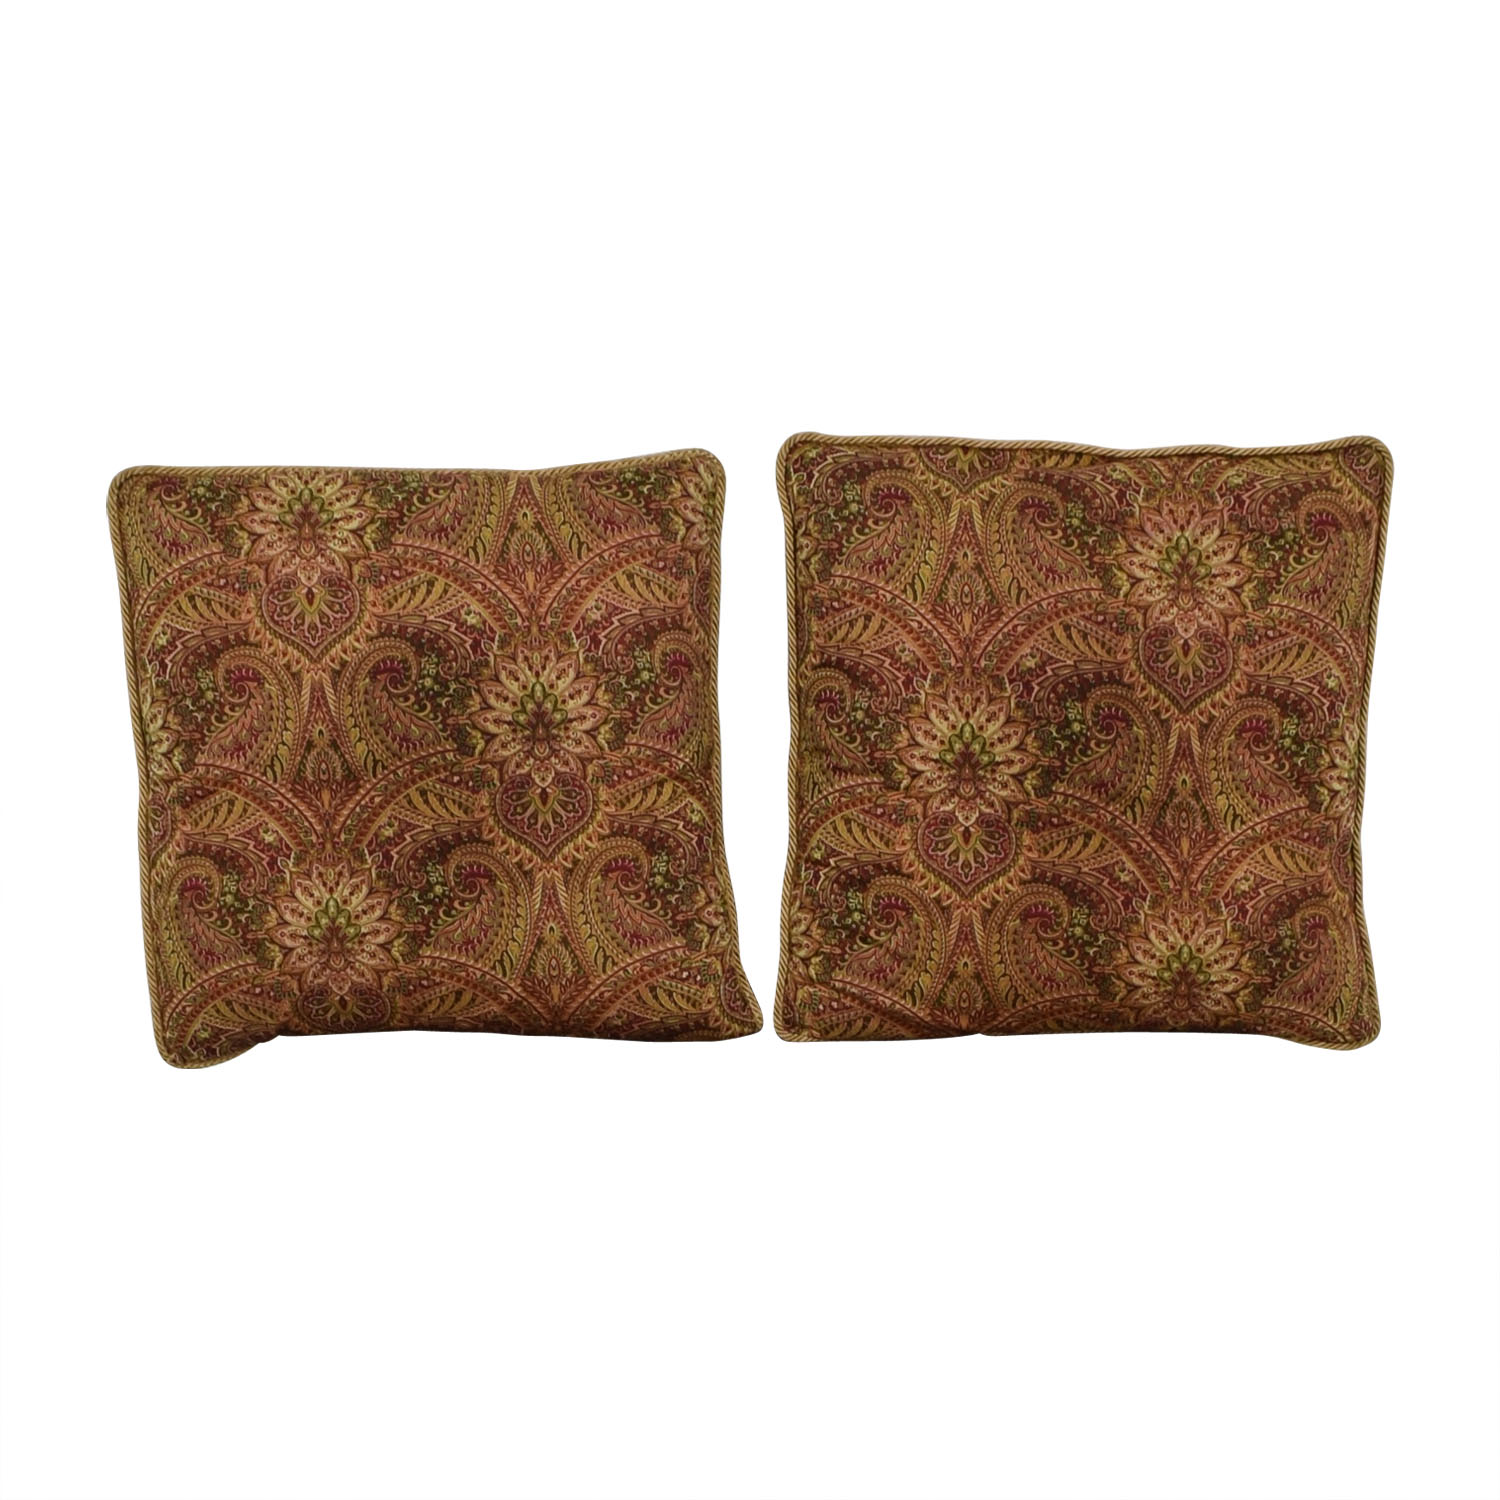 Paisley Floor Pillows with Gold Braid Trim Decor